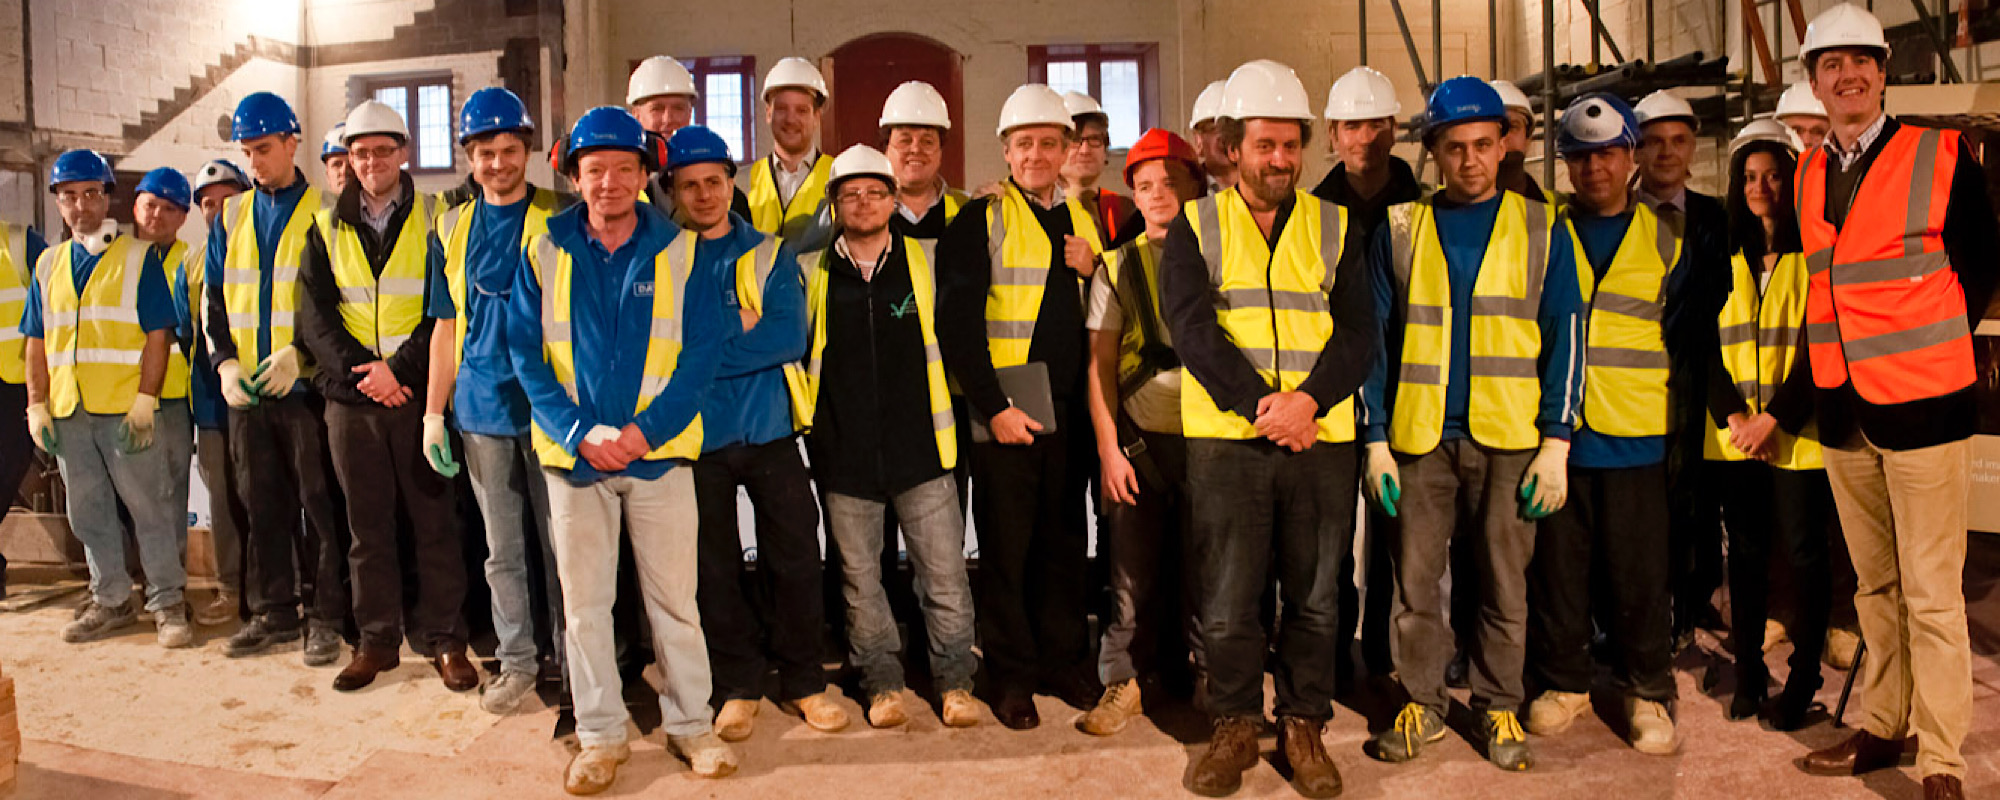 A large group of people in high visibility jackets and hard hats stand on an indoor construction site